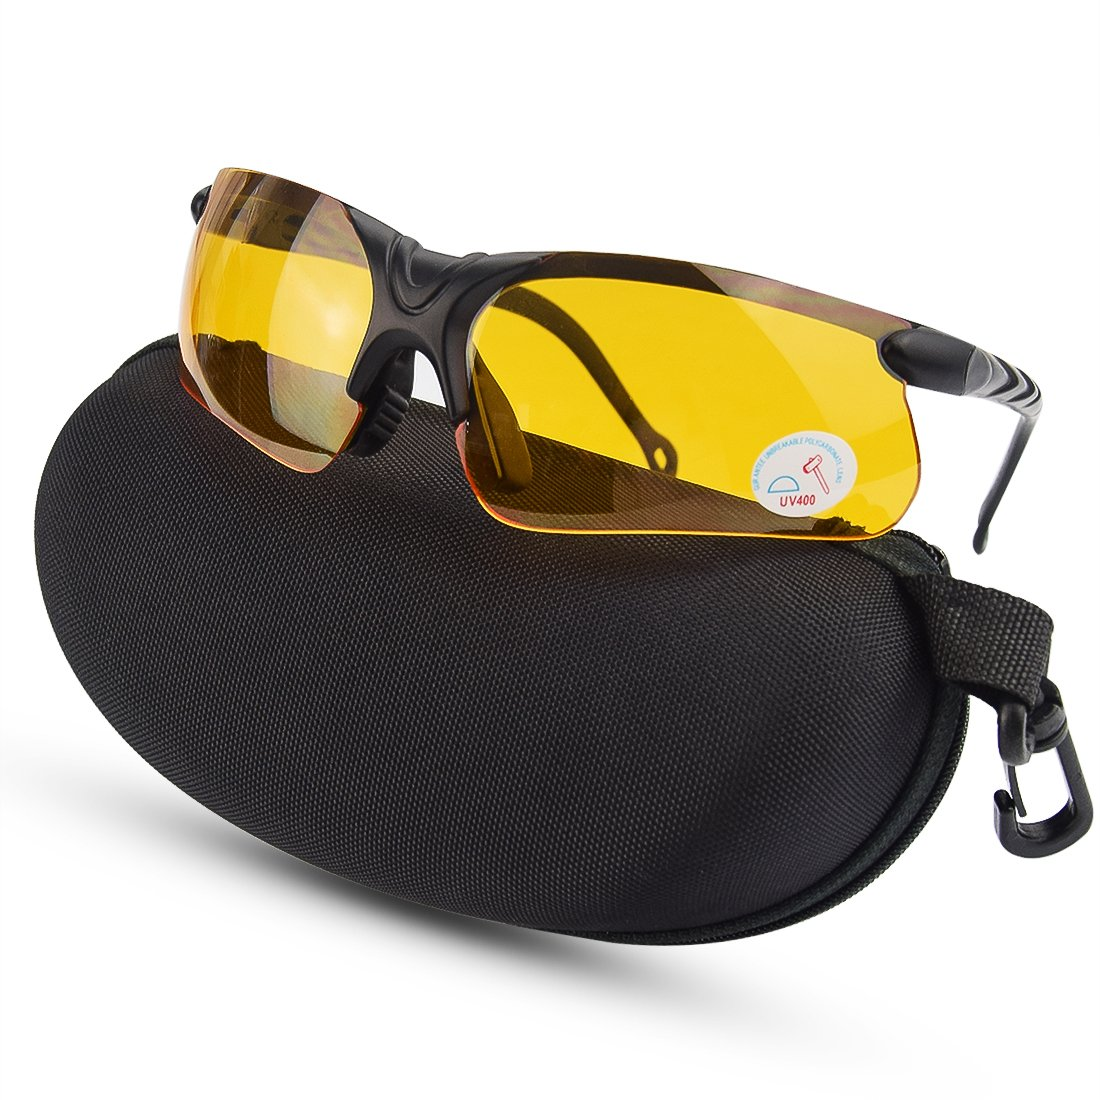 XAegis Shooting Glasses with Case, Polycarbonate Lens and Rubber Nose Padding Anti Fog Hunting Safety Glasses for Men & Women - Eye Protection